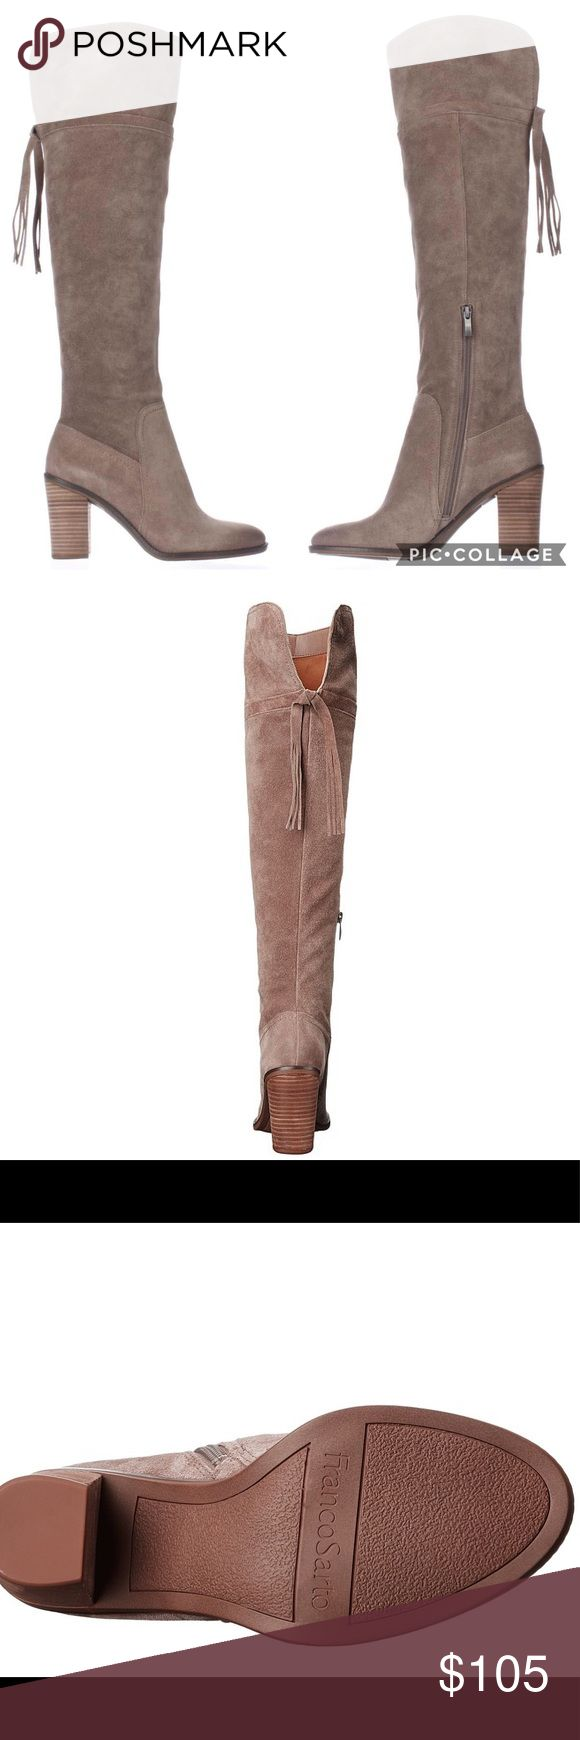 """Franco Sarto Tassel Back Over the Knee Boots, New without box, Franco Sarto Eckhart Tassel Back Over the Knee Boots. Color: Taupe Material: Suede Heel: 3"""" Toe Shape: Round Size 6.5 Stacked heel Franco Sarto Shoes Over the Knee Boots"""